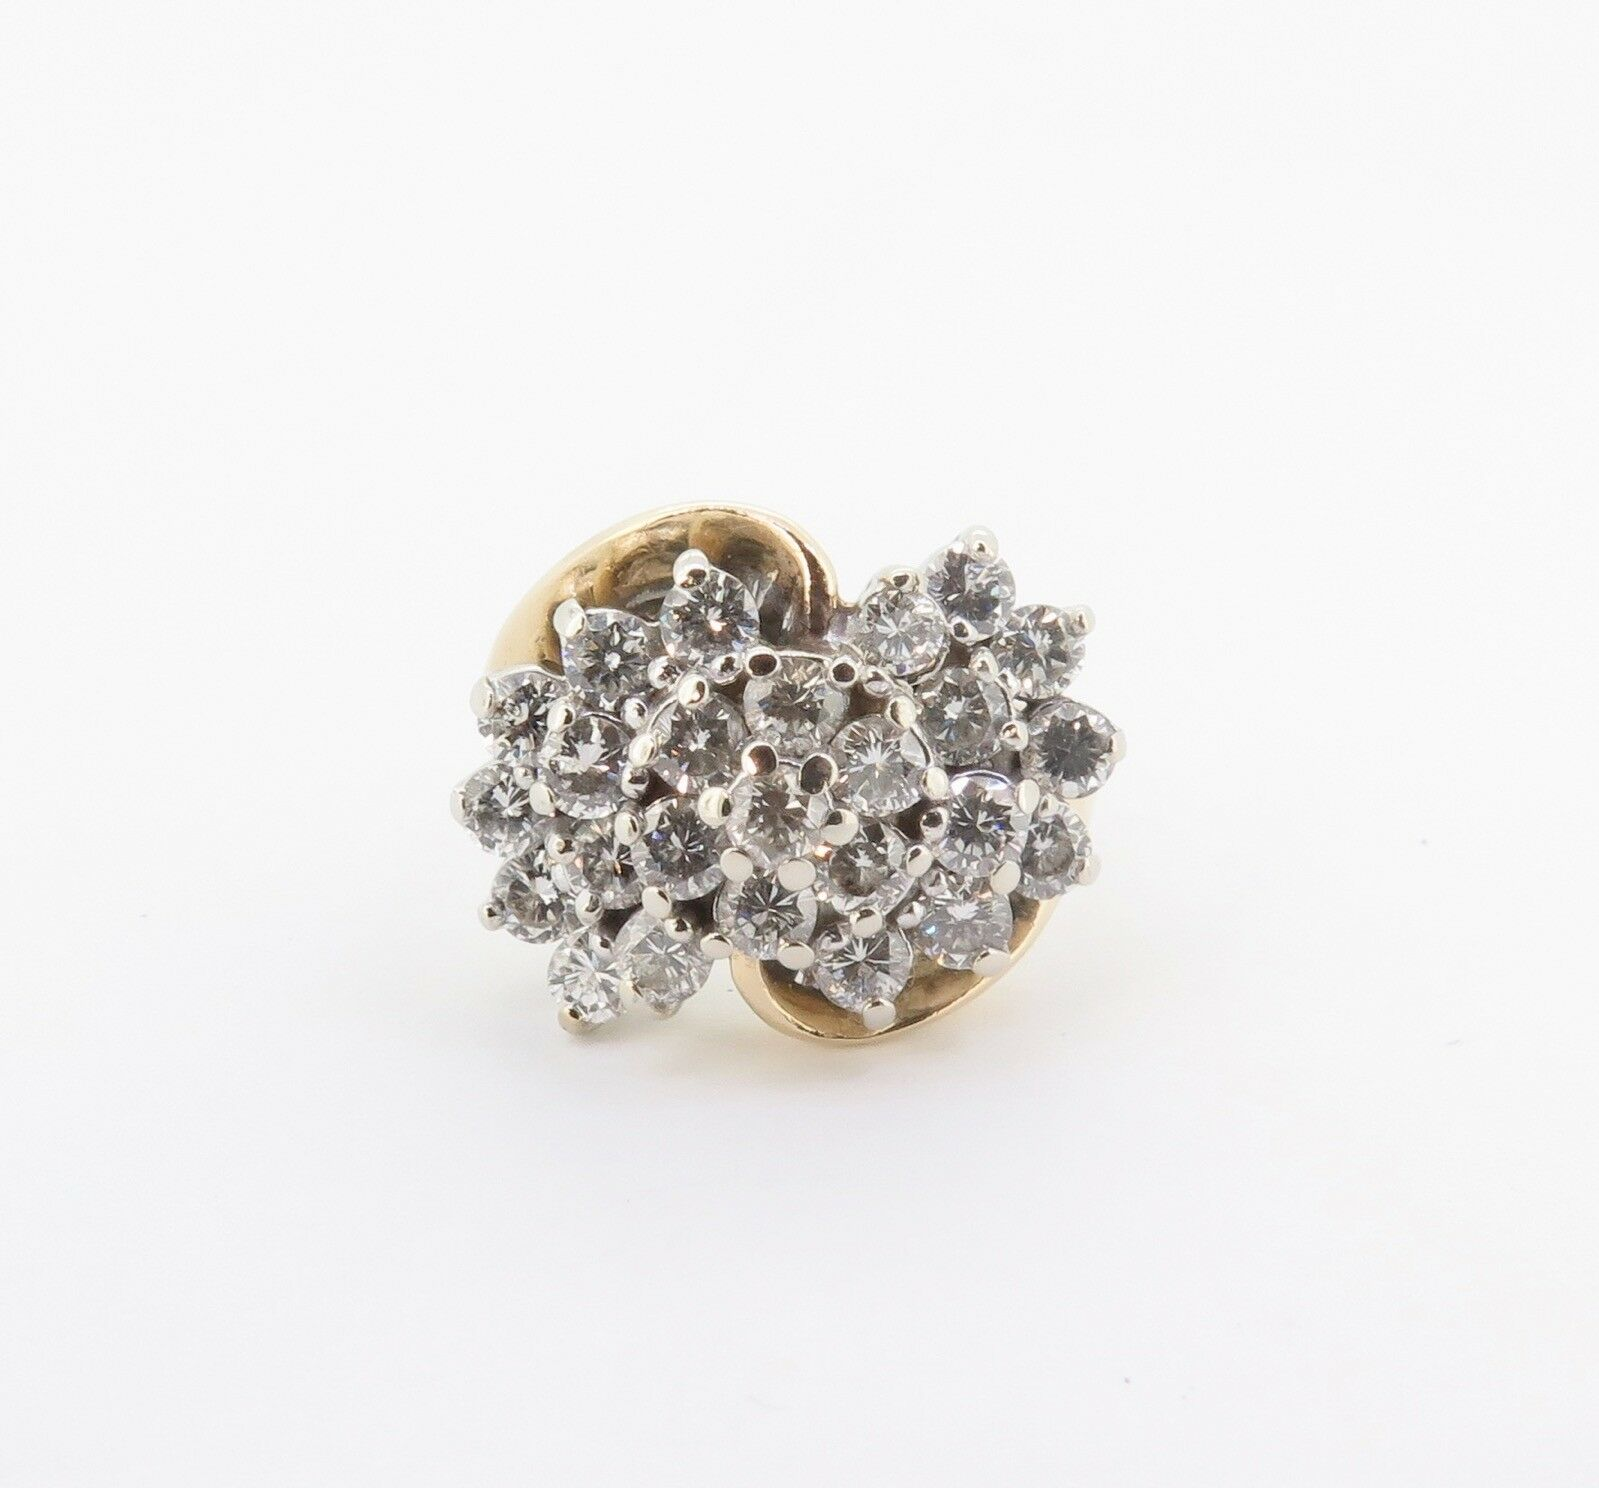 .A 2.00cttw Diamond Ladies 14k gold Cluster Ring Size M Val  5990